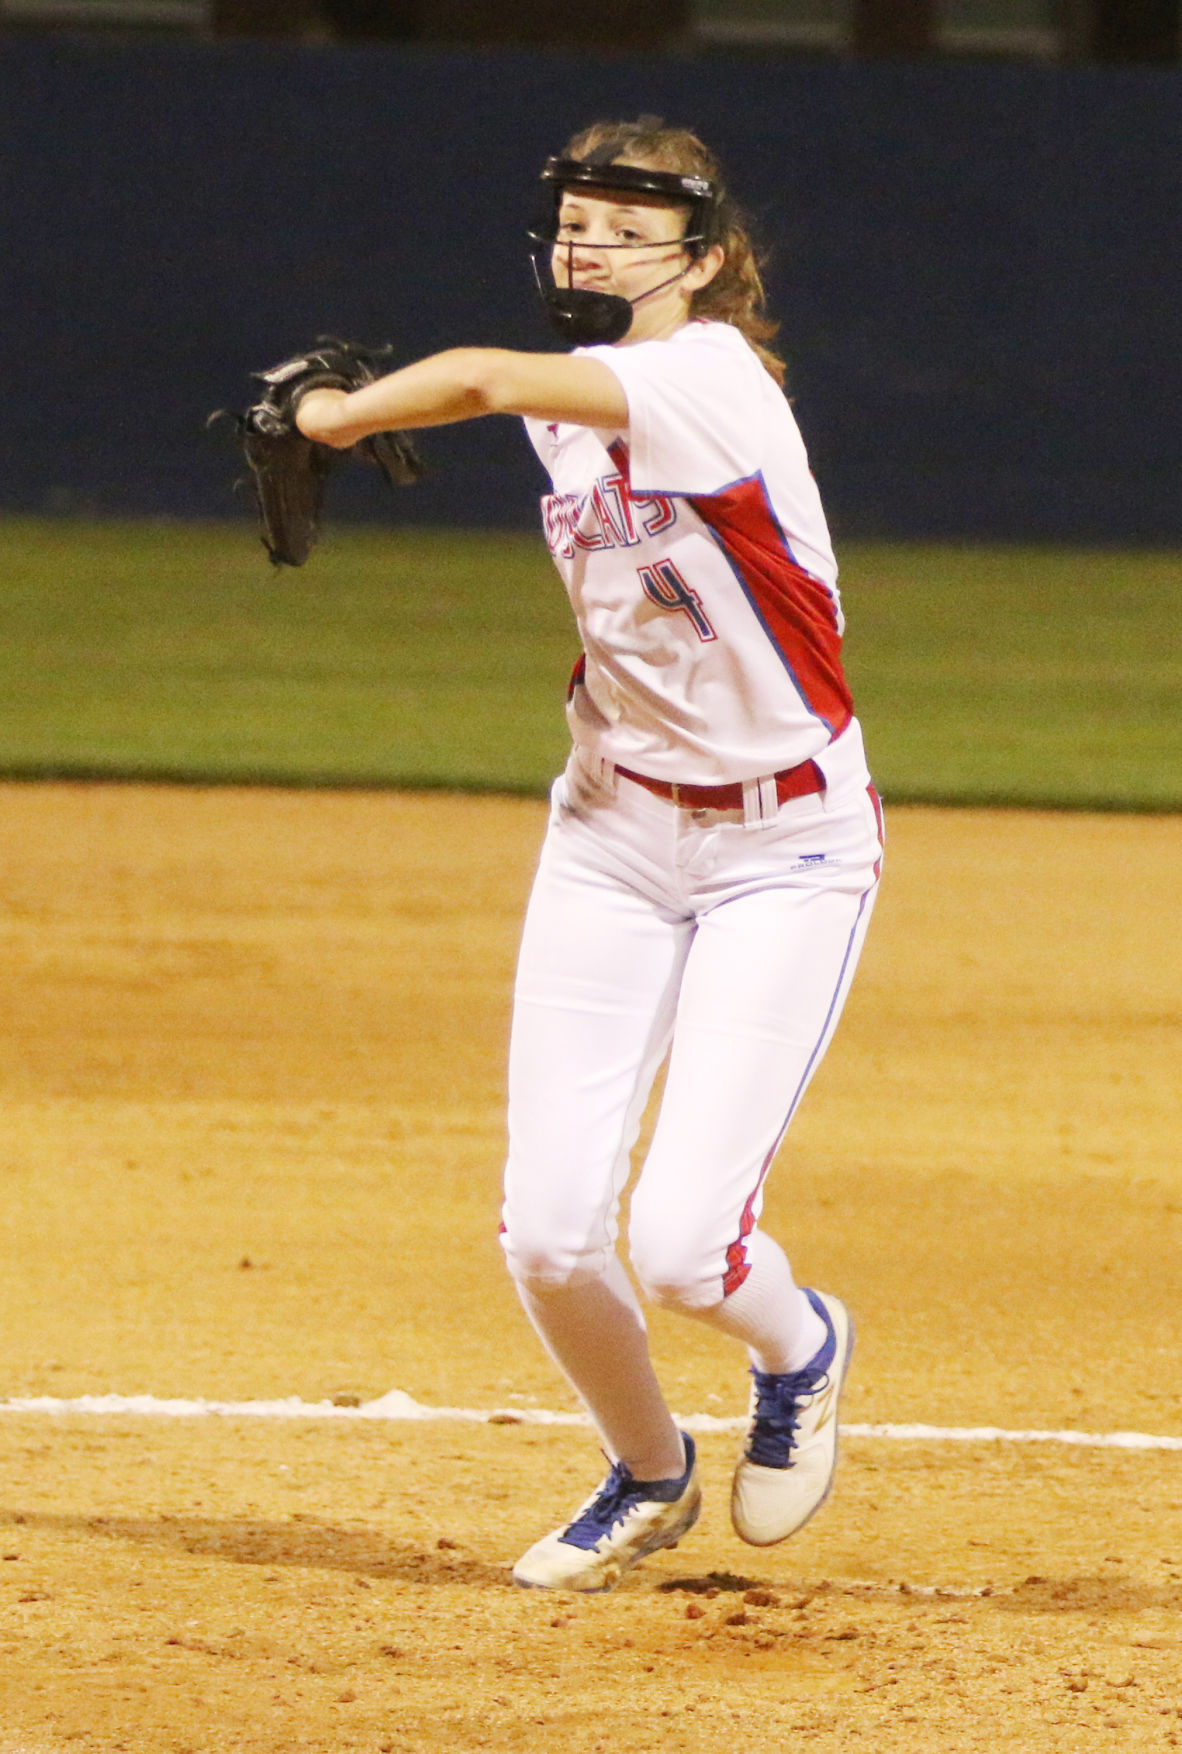 Gregory-Portland Ladycats earn all-district team honors